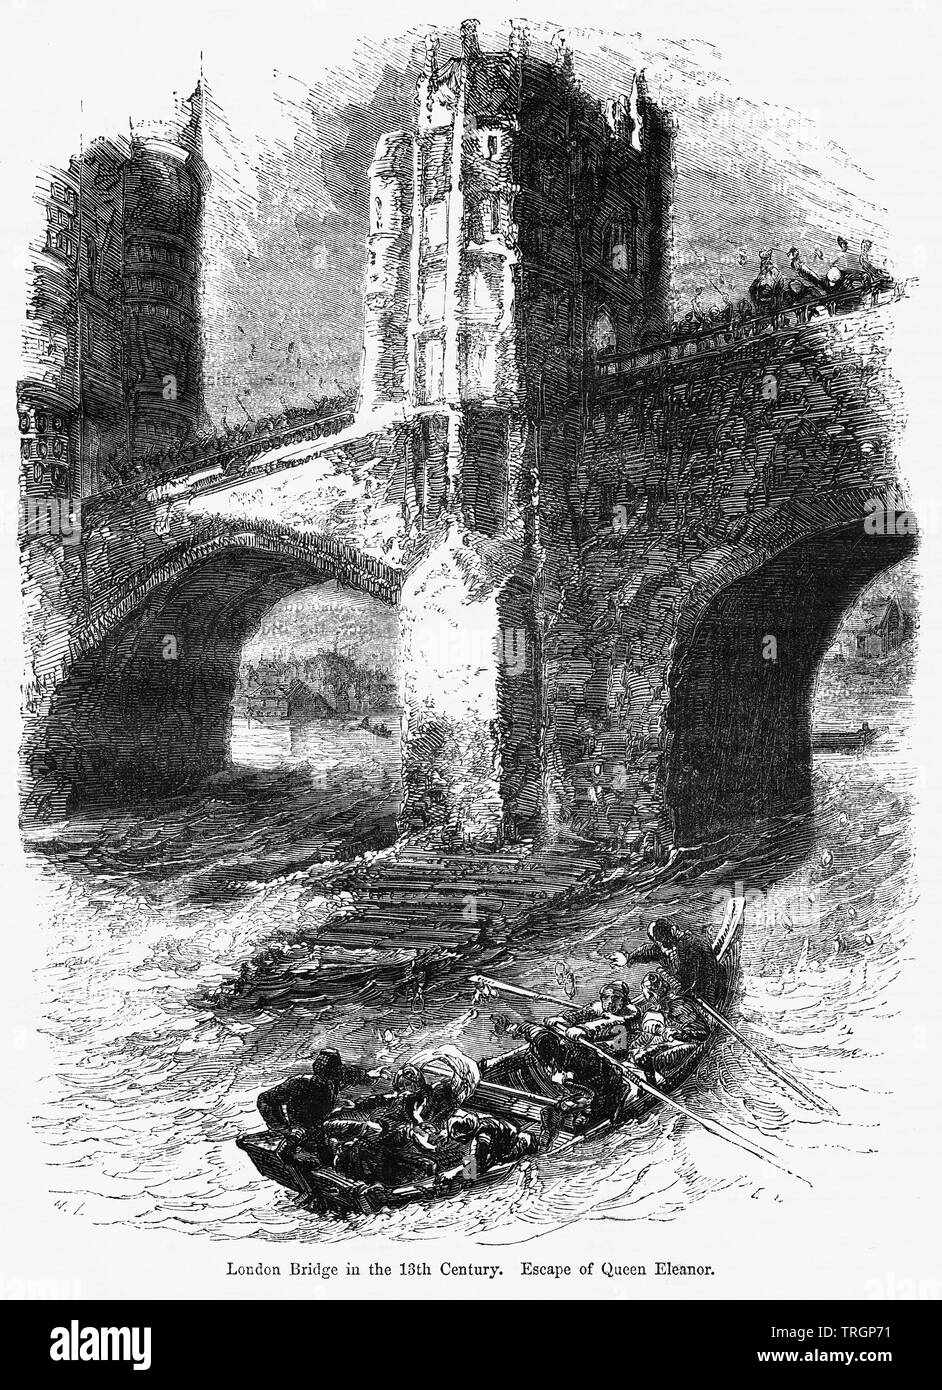 London Bridge in the 13th Century, Escape of Queen Eleanor, Illustration from John Cassell's Illustrated History of England, Vol. I from the earliest period to the reign of Edward the Fourth, Cassell, Petter and Galpin, 1857 - Stock Image